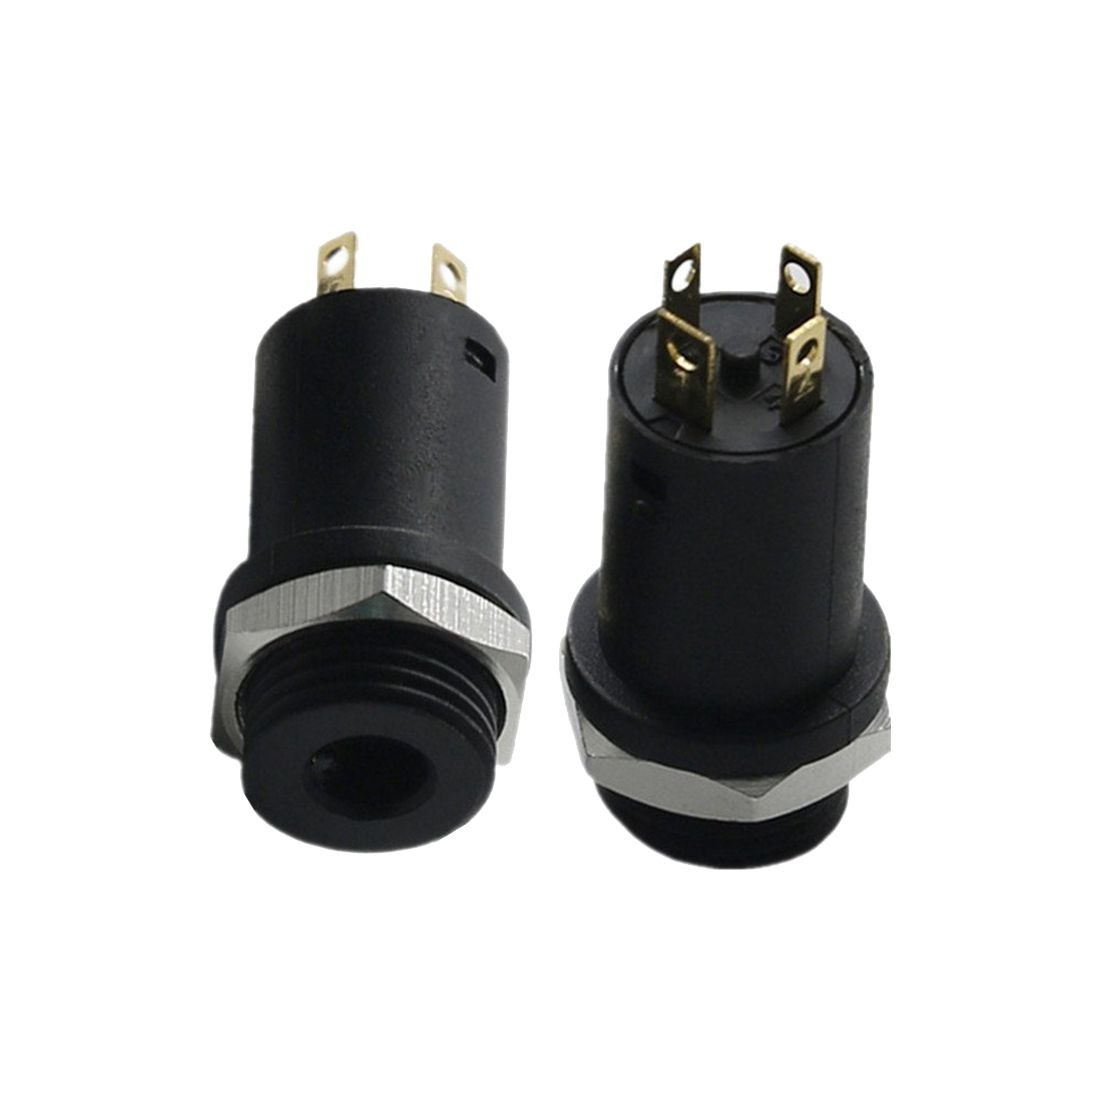 10pcs 3 5mm mini stereo female panel mount headphone jack solder black 4 conductor in earphone accessories from consumer electronics on aliexpress com  [ 1100 x 1100 Pixel ]